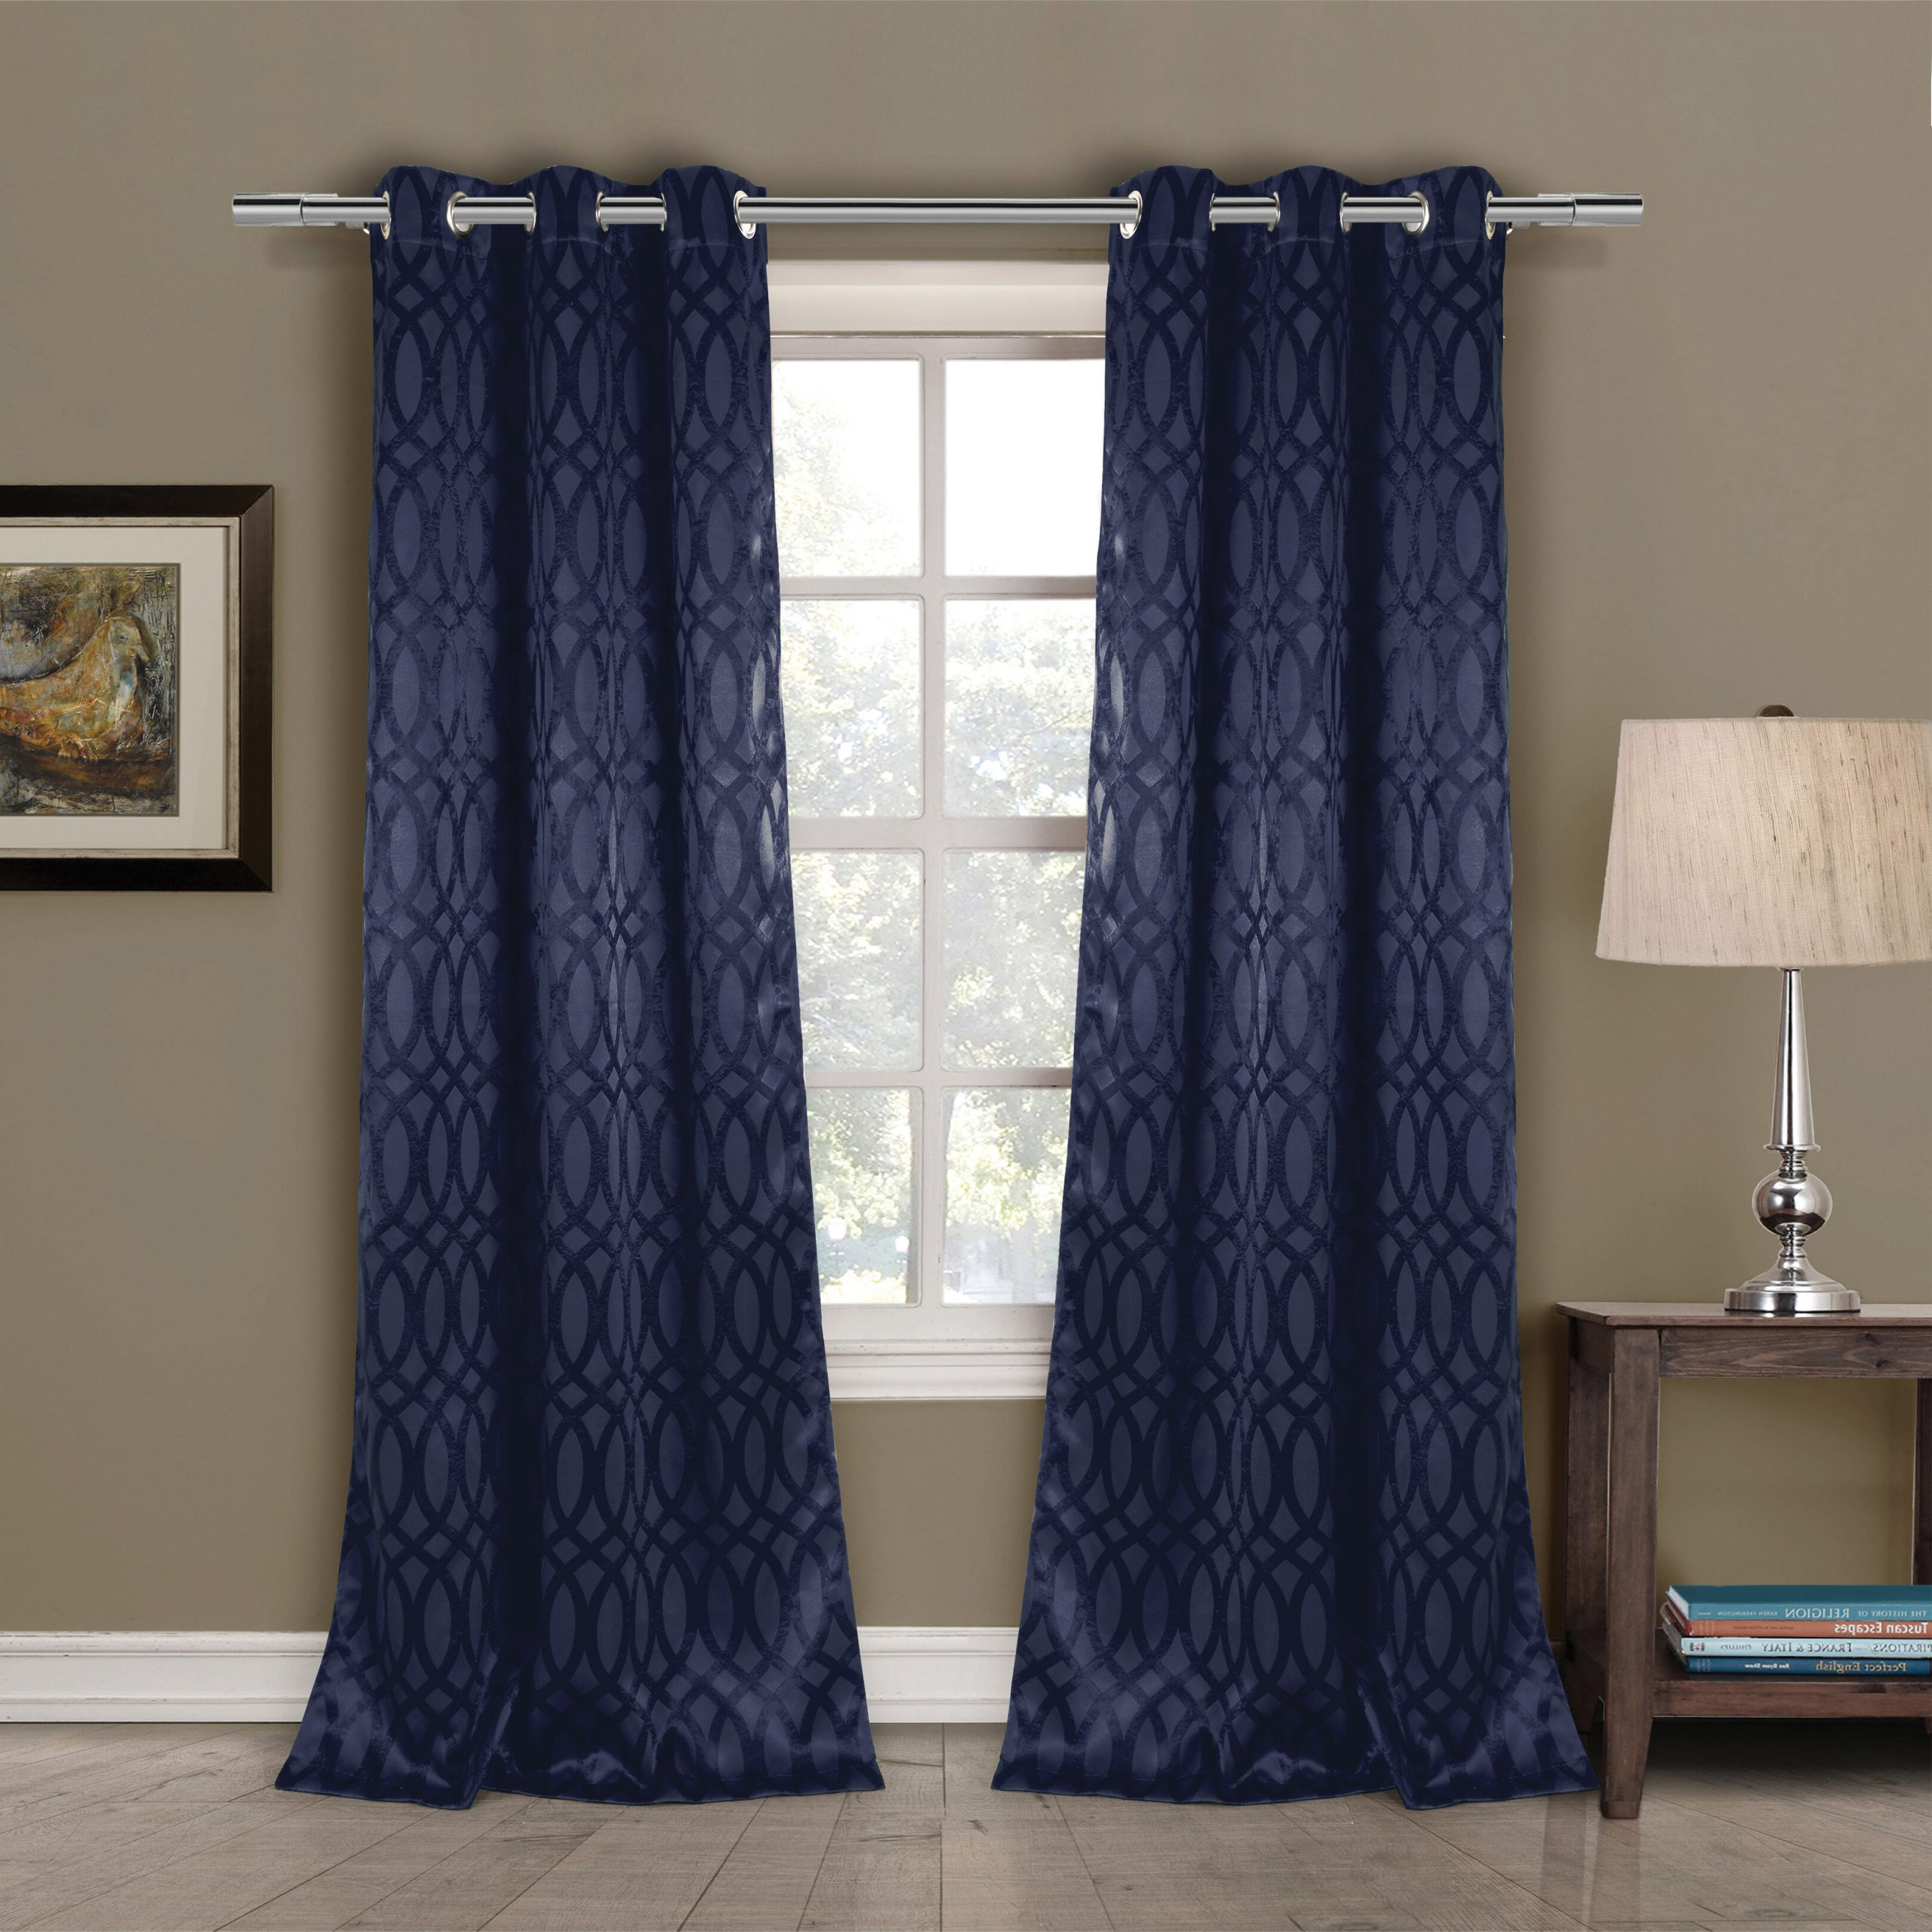 2020 House Of Hampton Mooneyham Geometric Blackout Grommet Within Tuscan Thermal Backed Blackout Curtain Panel Pairs (View 9 of 20)